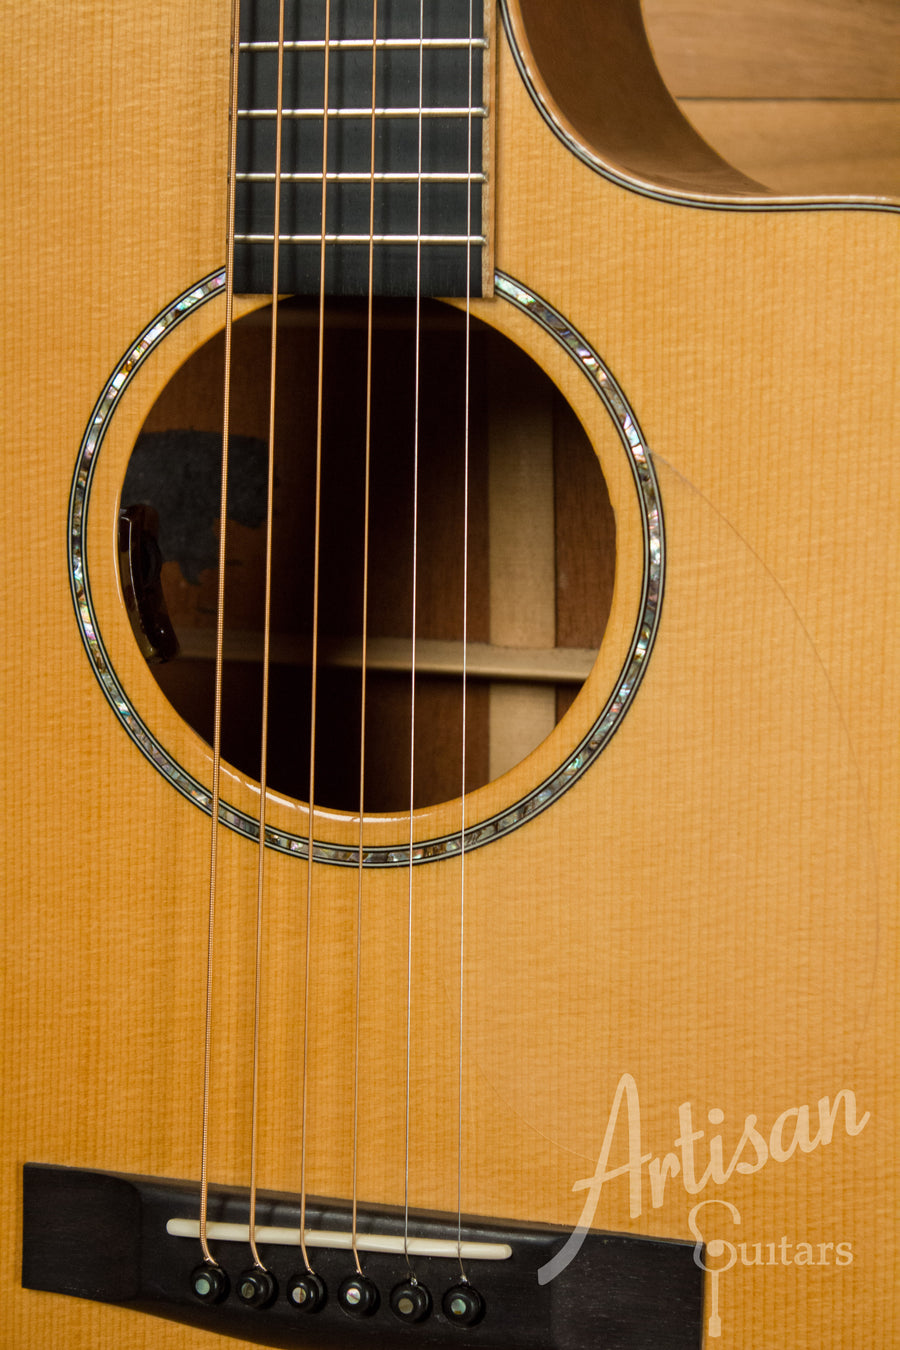 Huss and Dalton CM Cutaway Engelmann Spruce and Mahogany Pre-Owned 2000 ID-11104 - Artisan Guitars